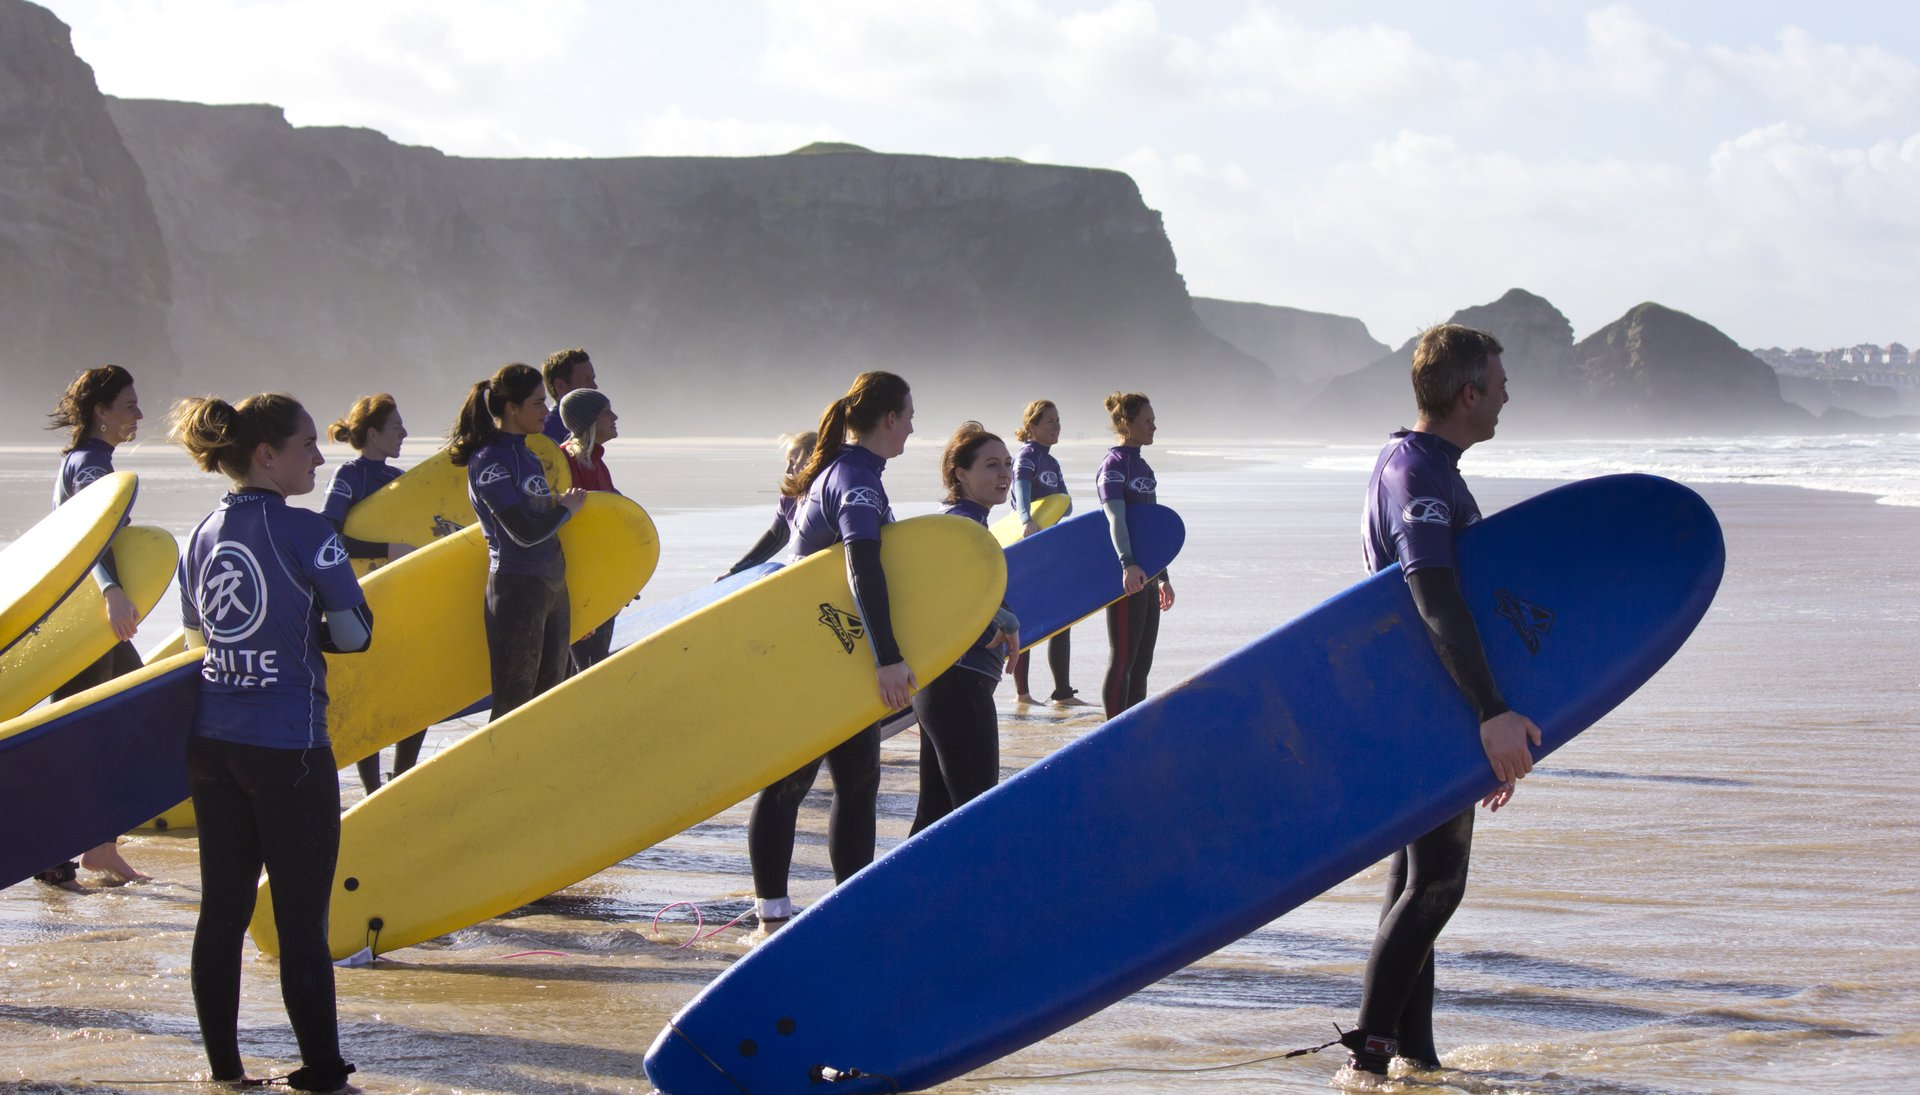 Extreme Academy Surf School's photo of Watergate Bay